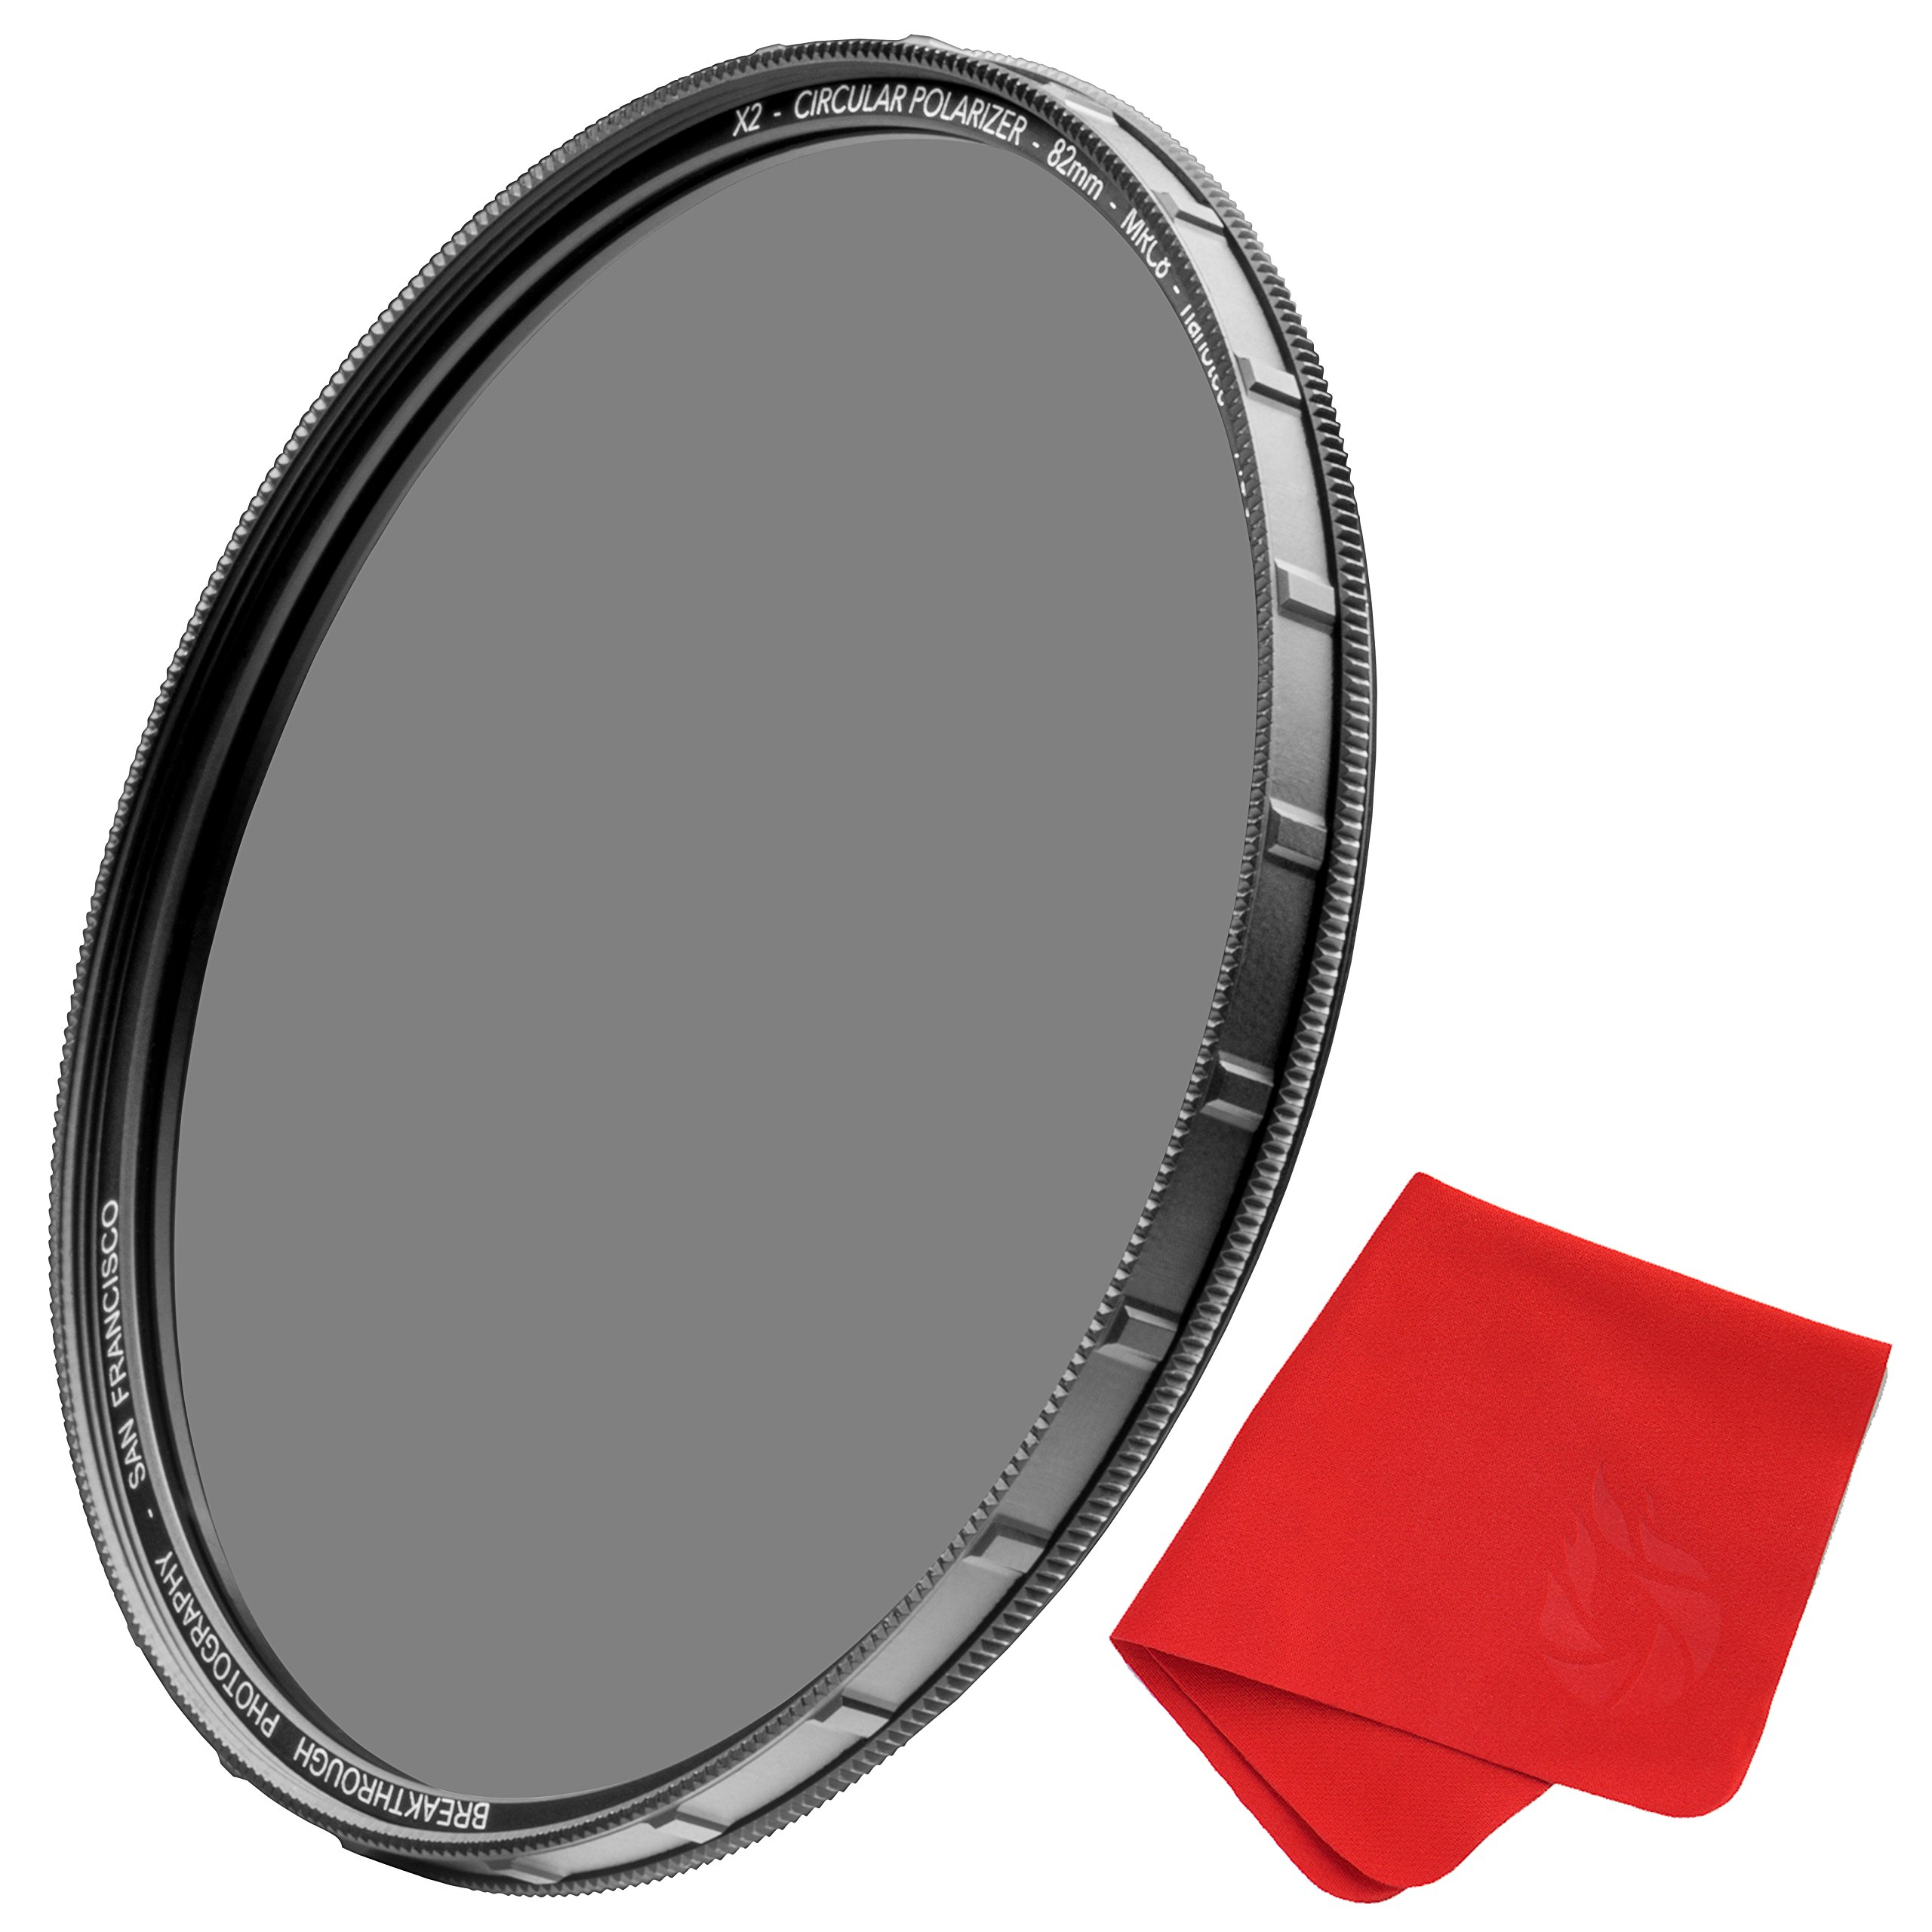 77mm X2 CPL Circular Polarizing Filter for Camera Lenses - AGC Optical Glass Polarizer Filter with Lens Cloth - MRC8 - Nanotec Coatings - Weather Sealed by Breakthrough Photography by Breakthrough Photography